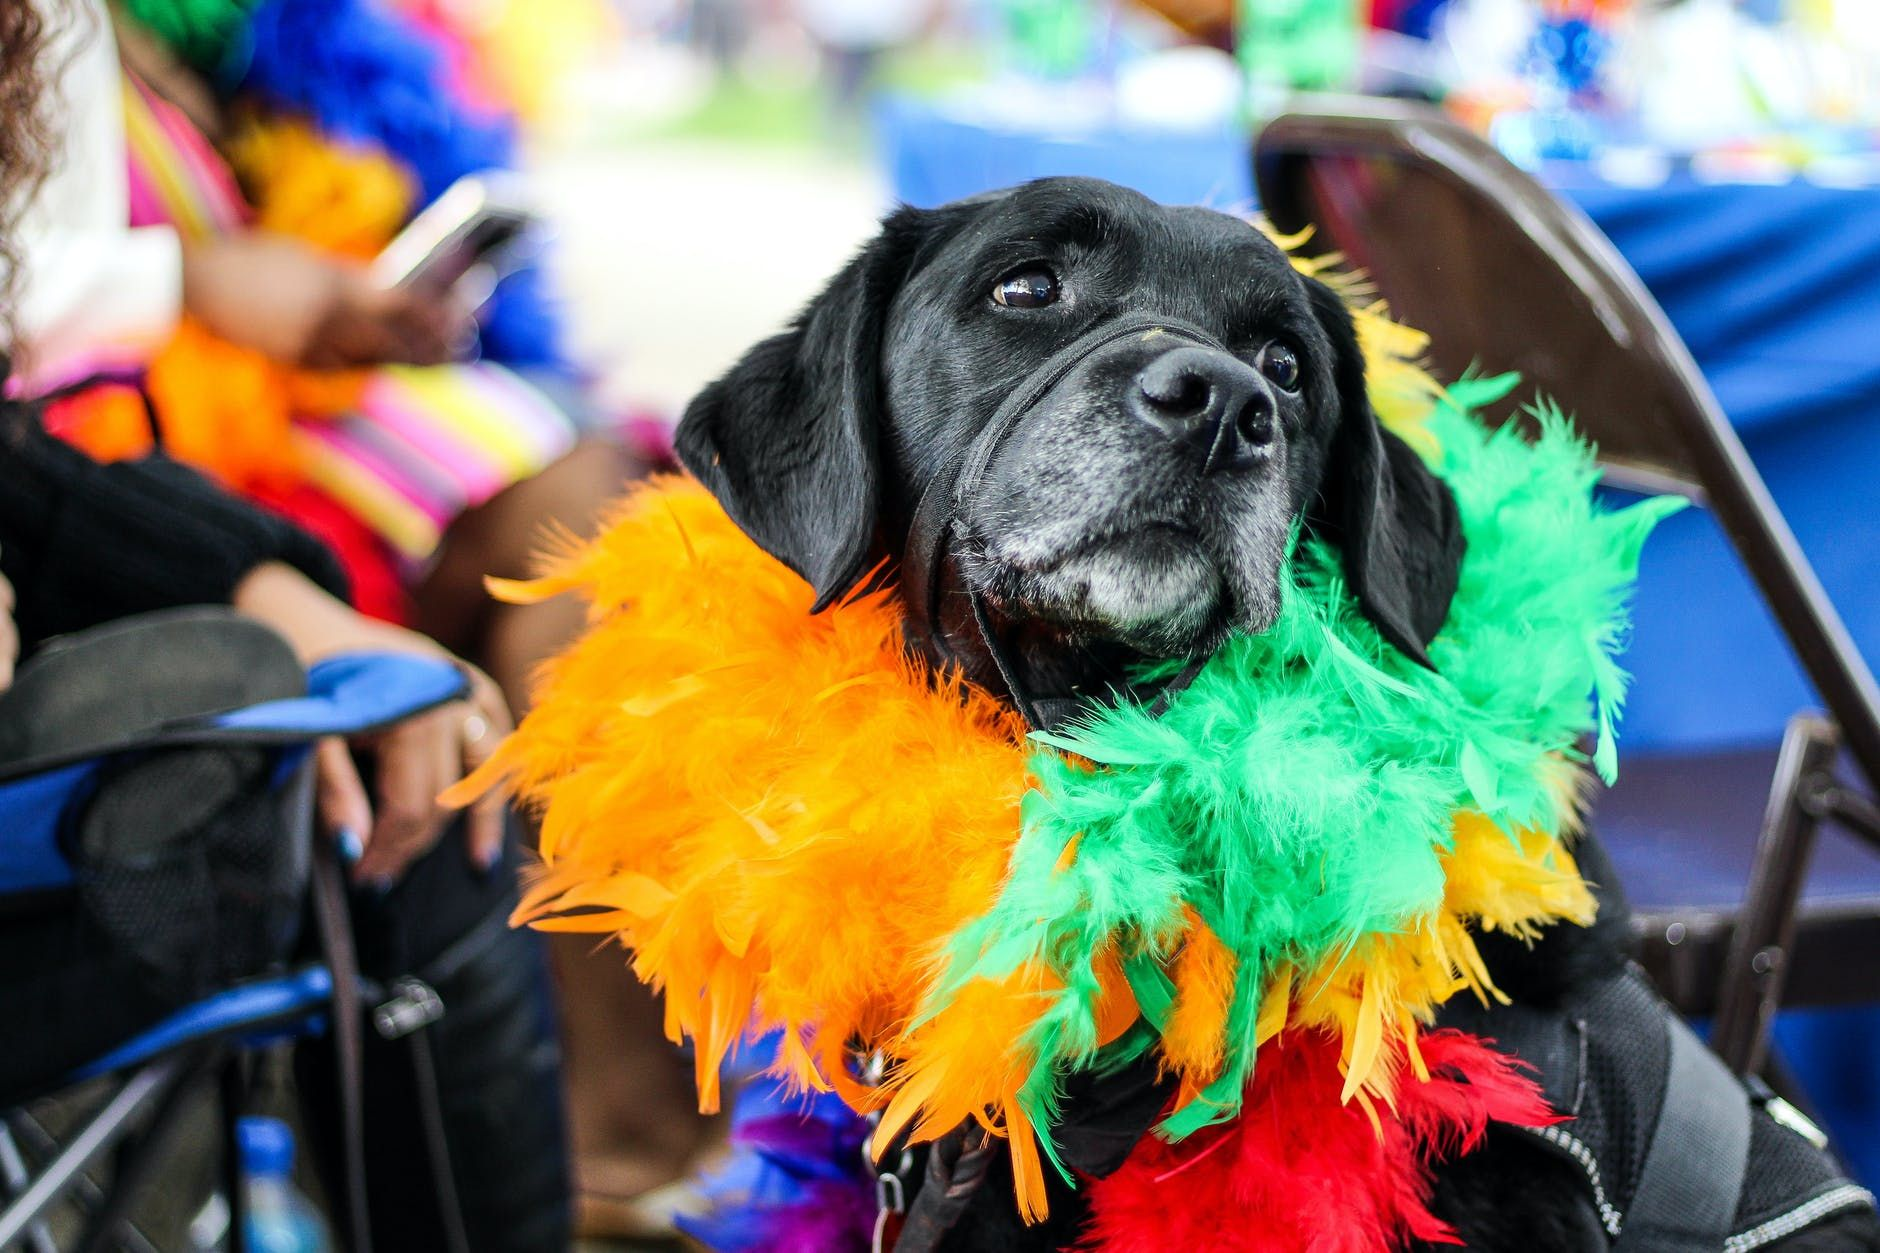 A black dog wearing colorful fur